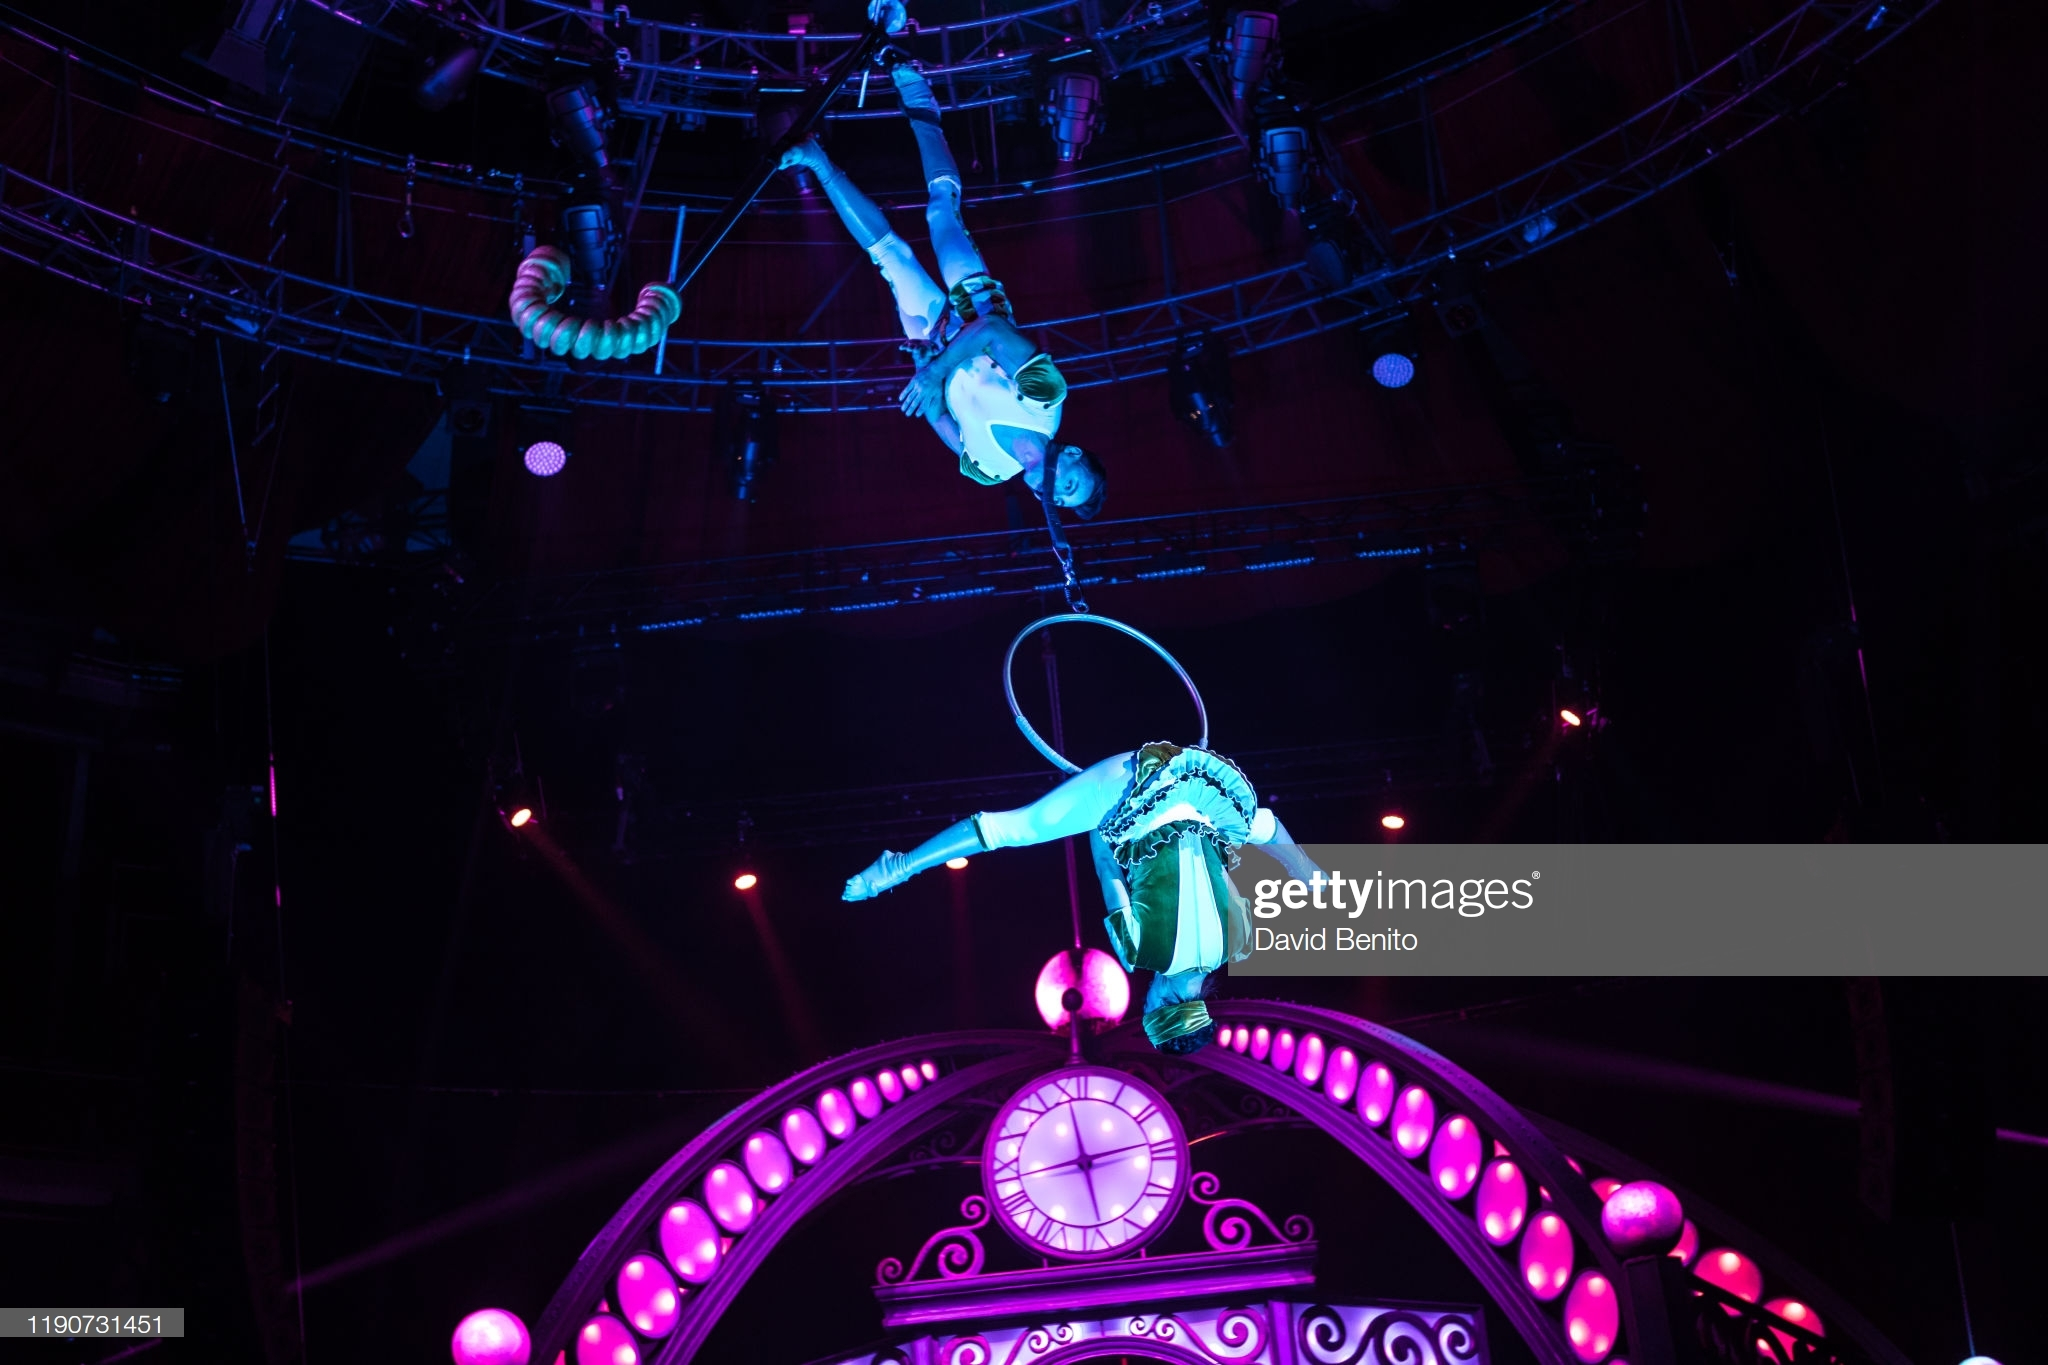 gettyimages-1190731451-2048x2048